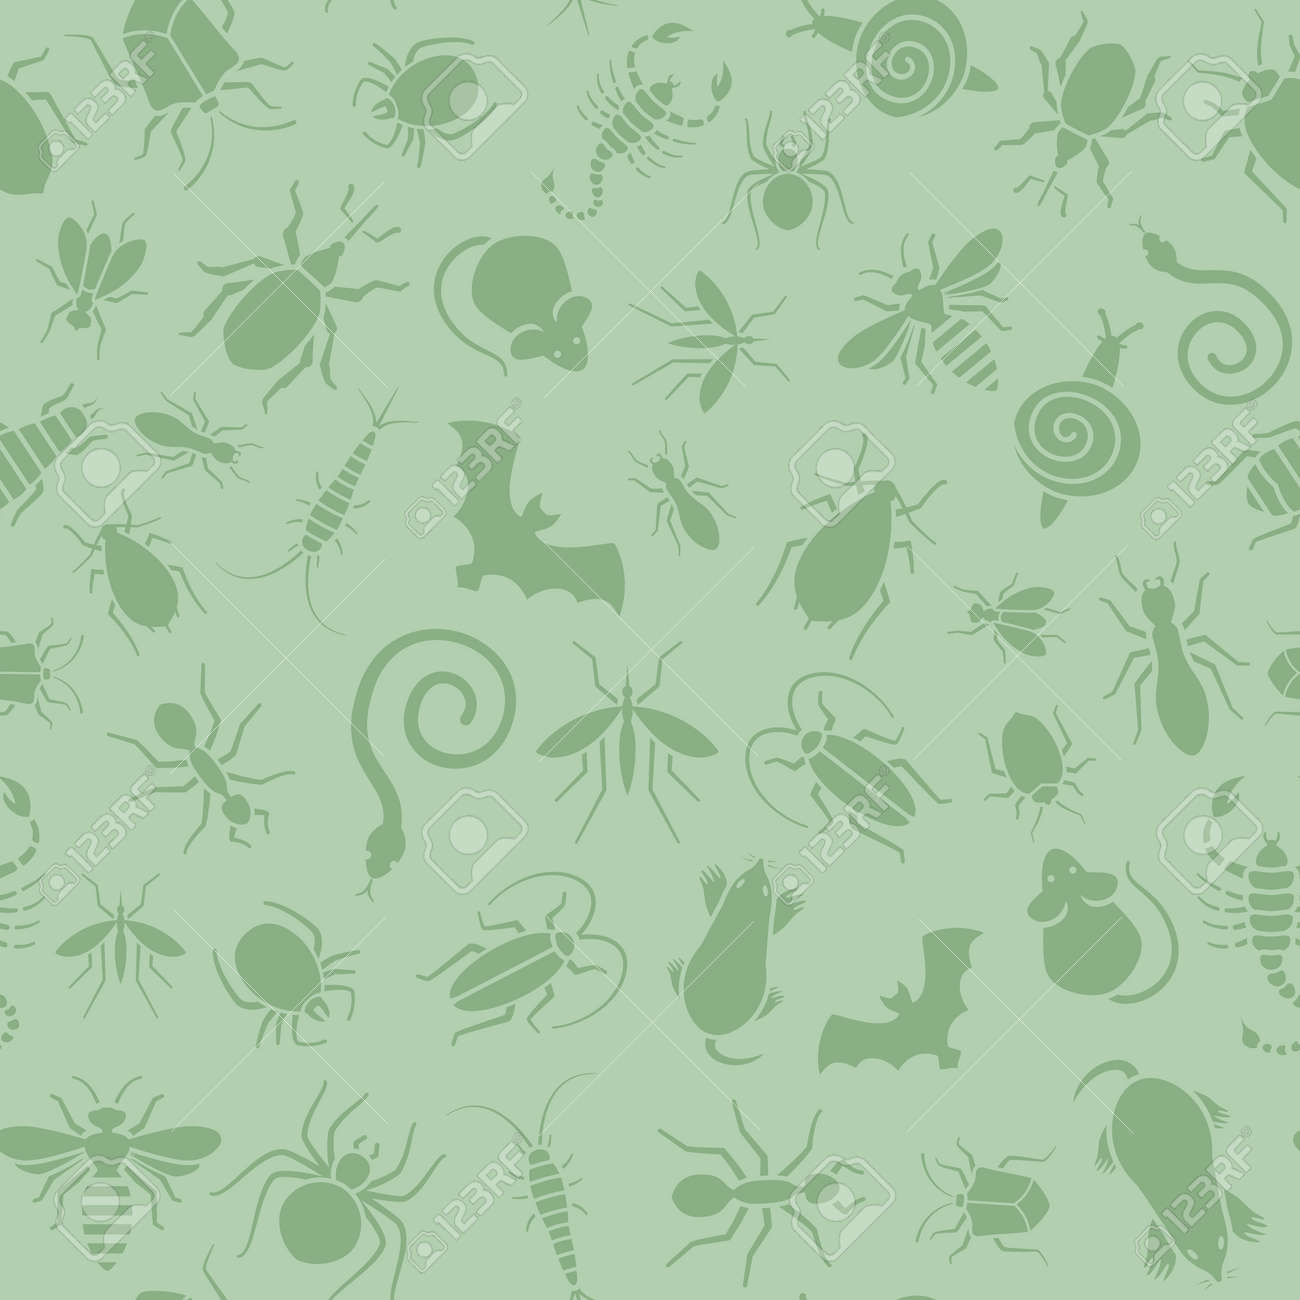 Vector green seamless pattern or background for website of different insects like scorpions, bed bugs and termites for pest control companies. Included some animals like bats, moles, mice and snakes. - 53434569